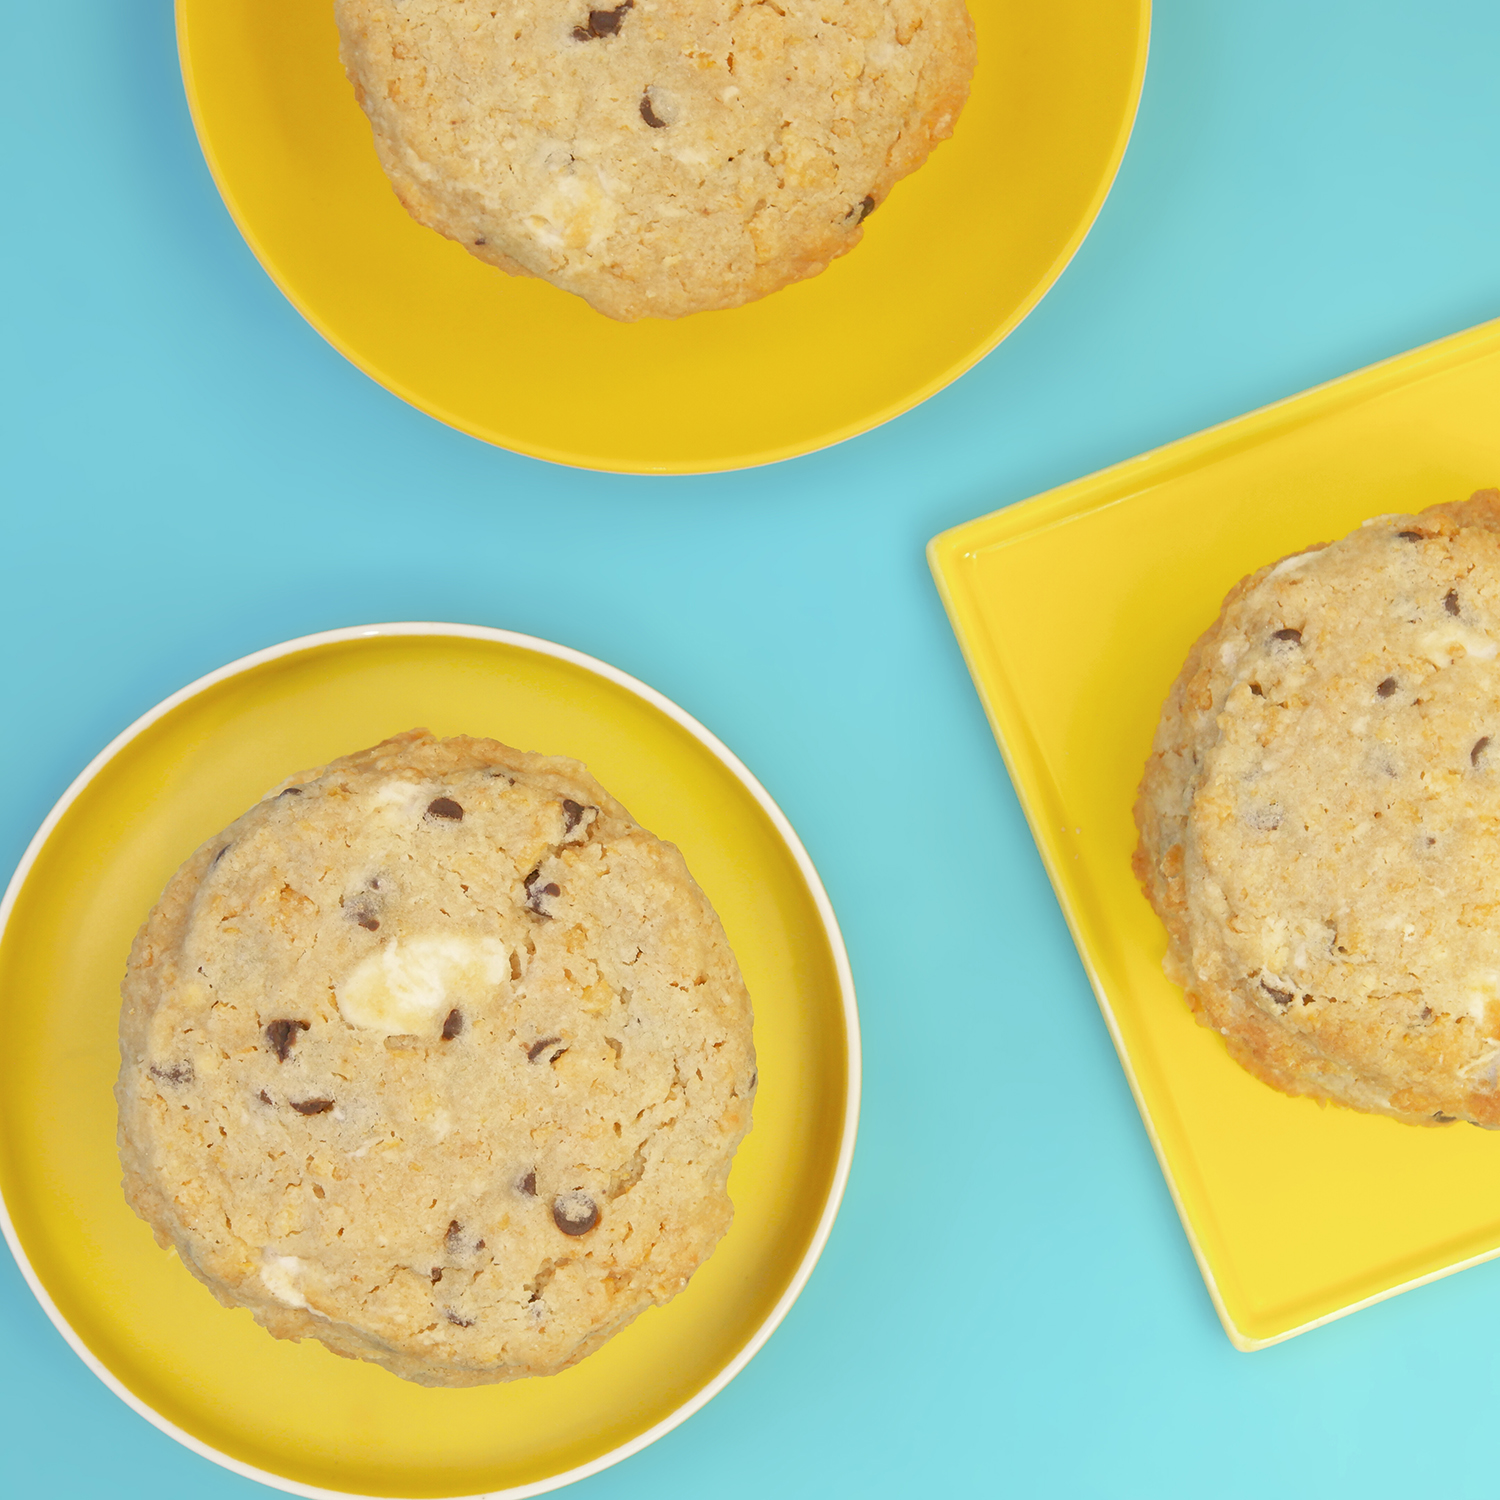 three chocolate chip cookies on yellow plates